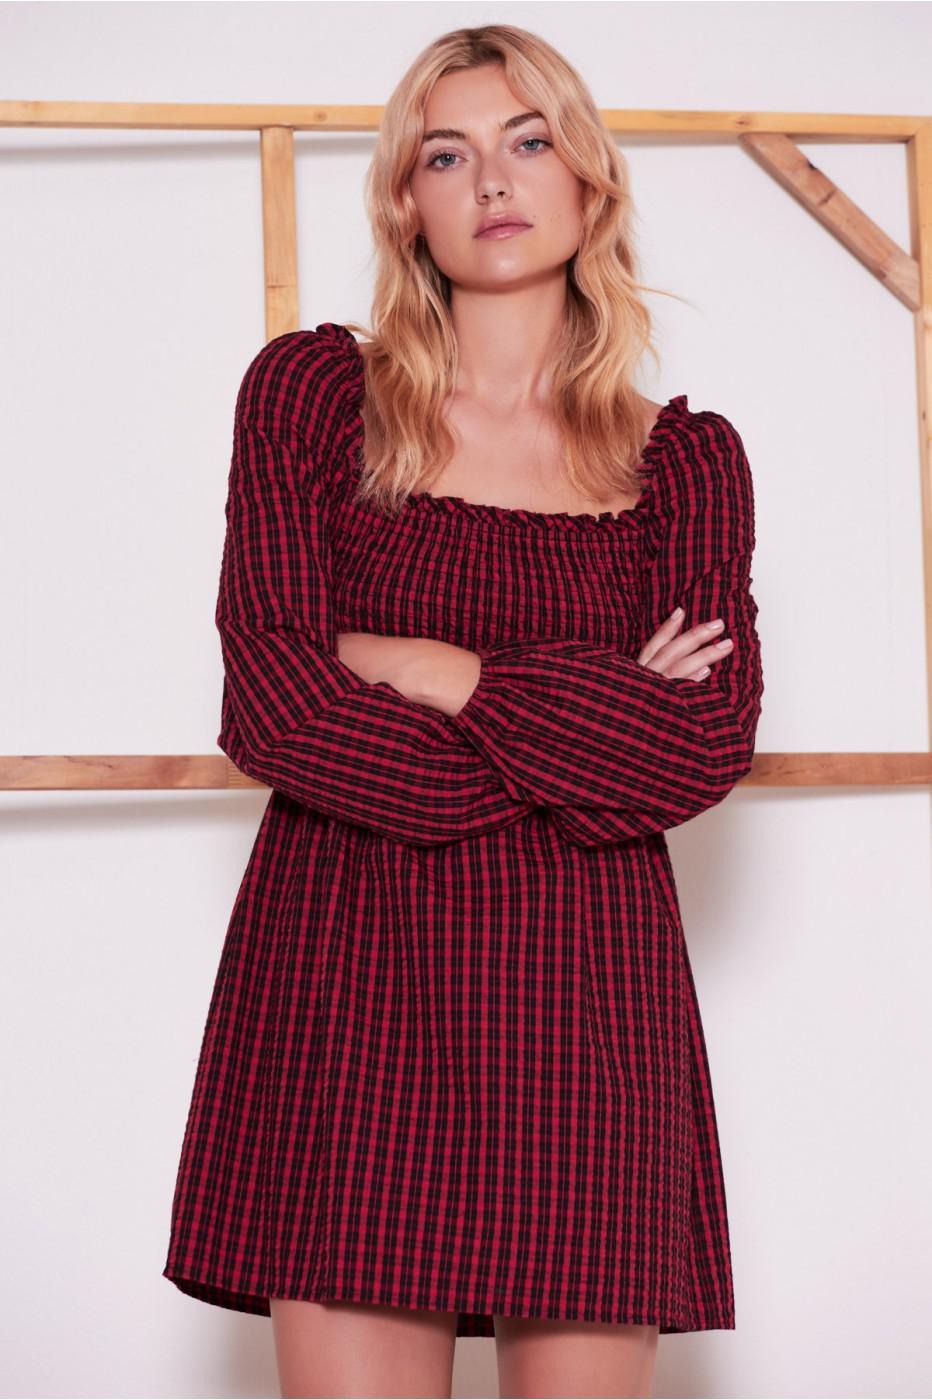 Lyst - The Fifth Label Campus Long Sleeve Dress in Red bb81c0e01